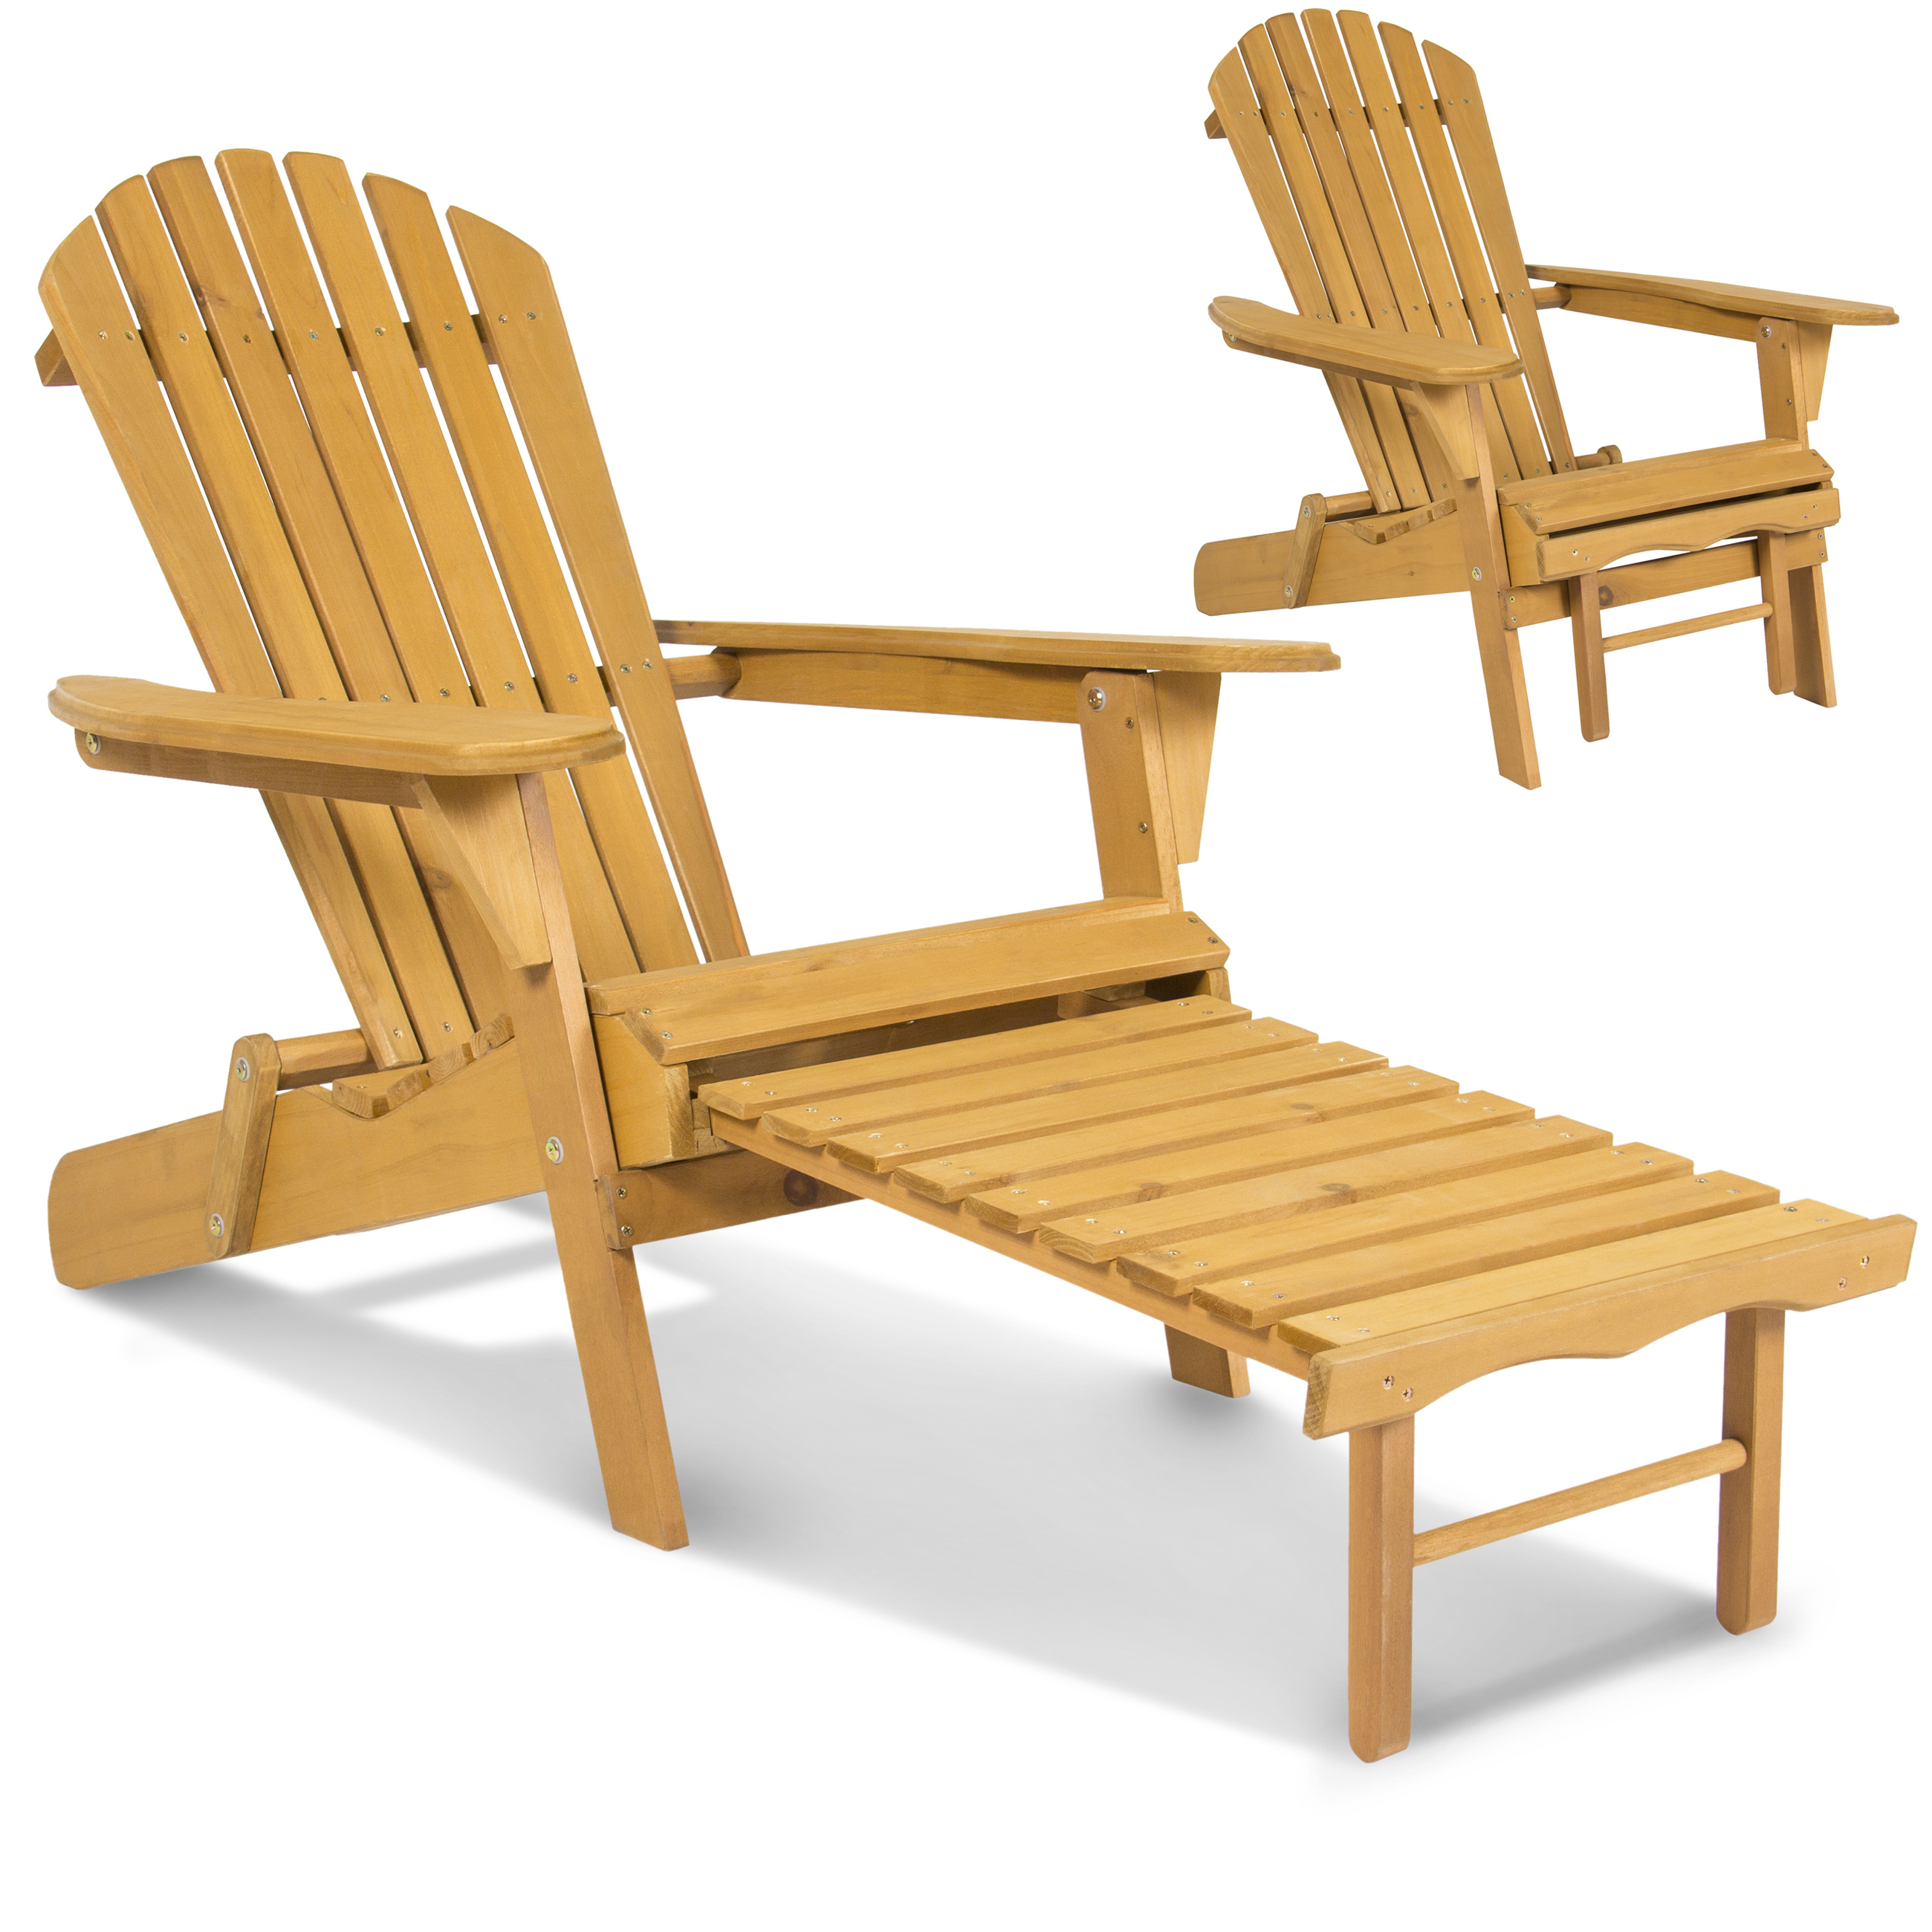 Outdoor wood adirondack chair foldable w pull out ottoman patio deck furniture walmart com